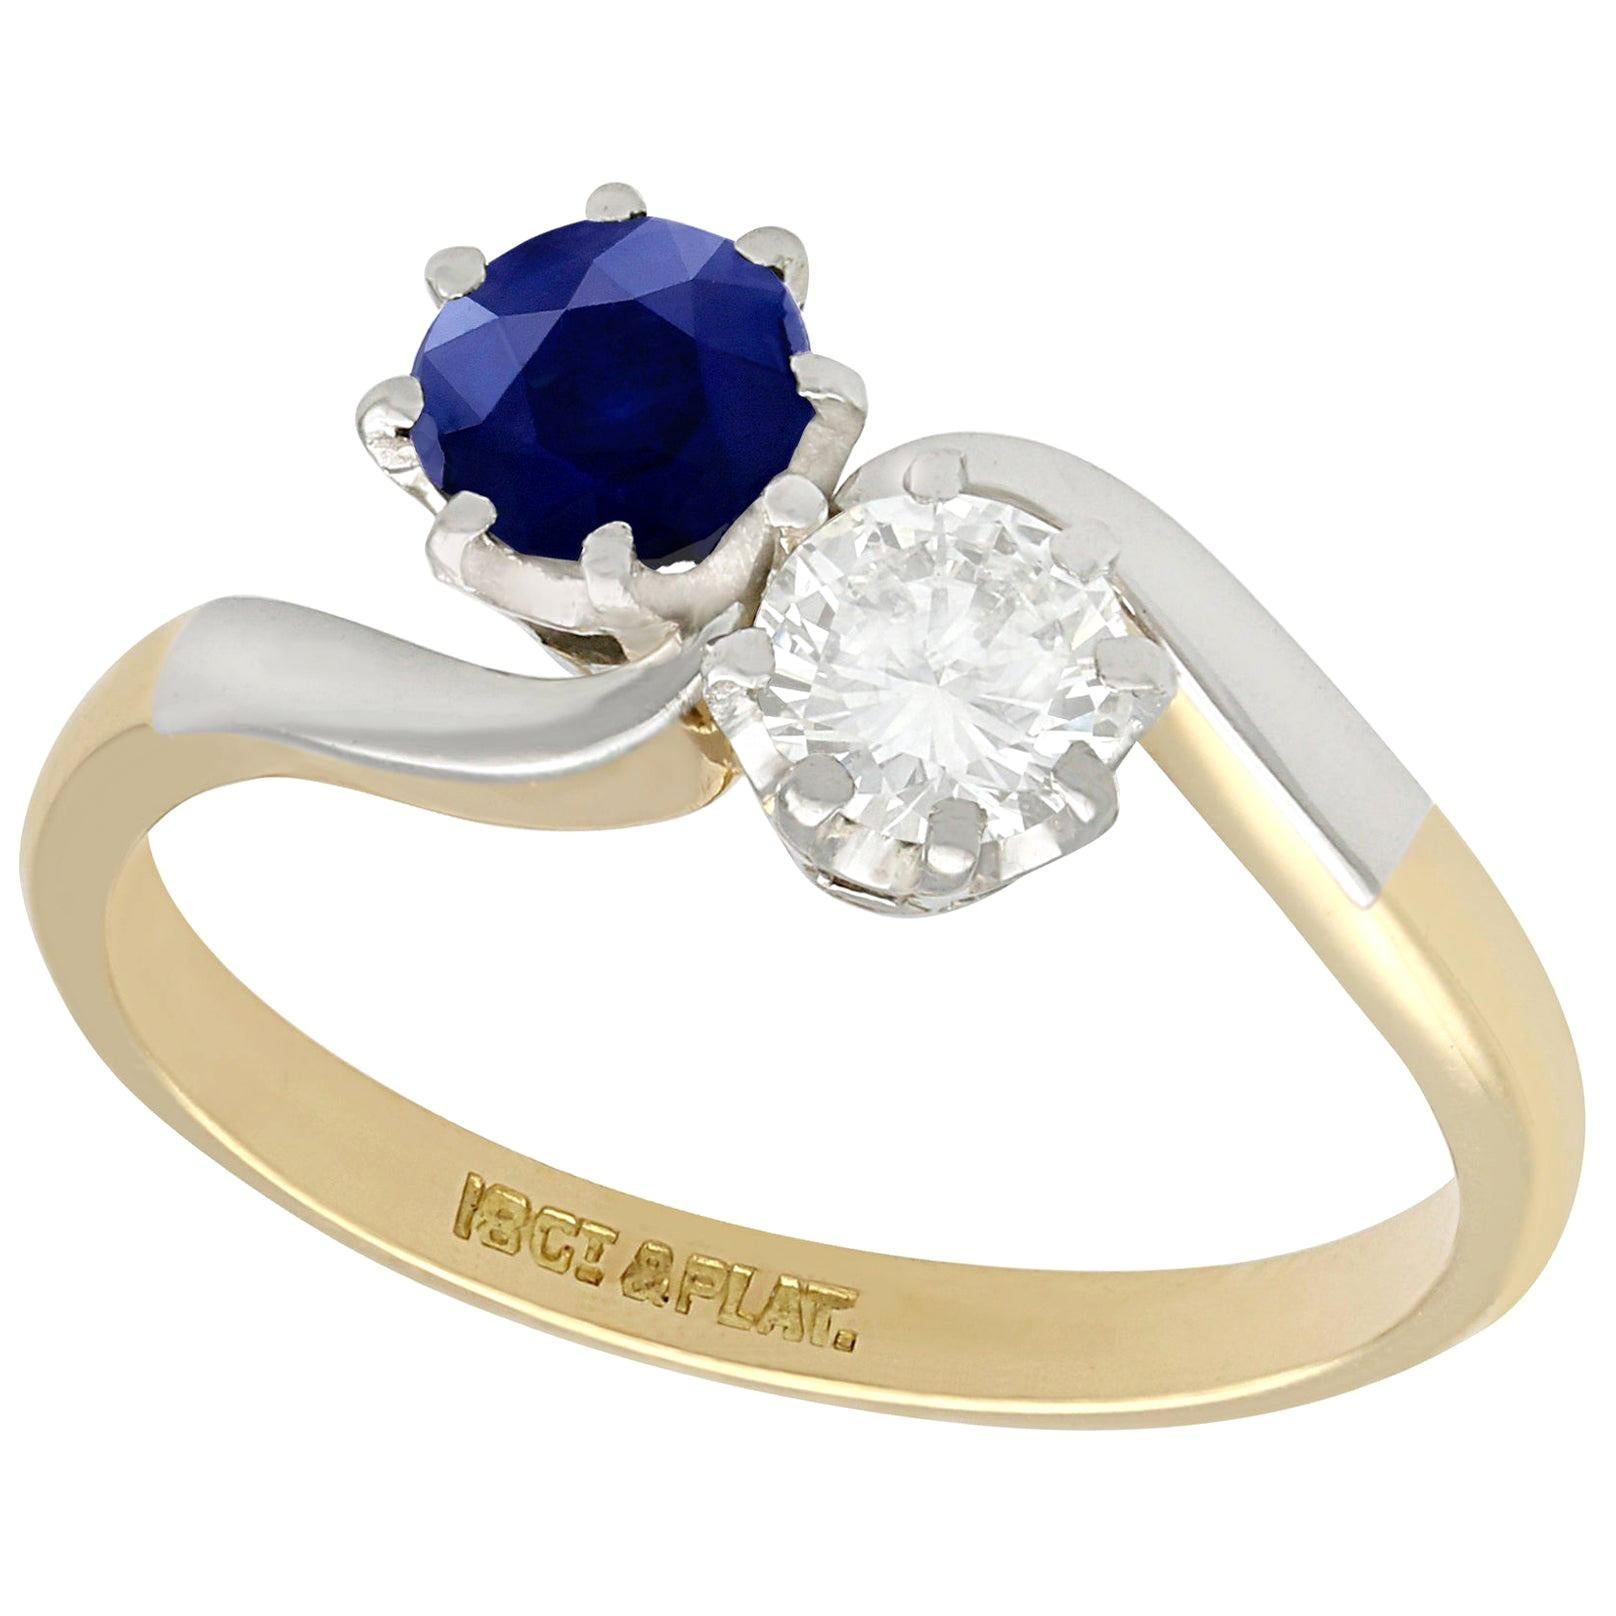 1950s Diamond and Sapphire Yellow Gold Twist Ring